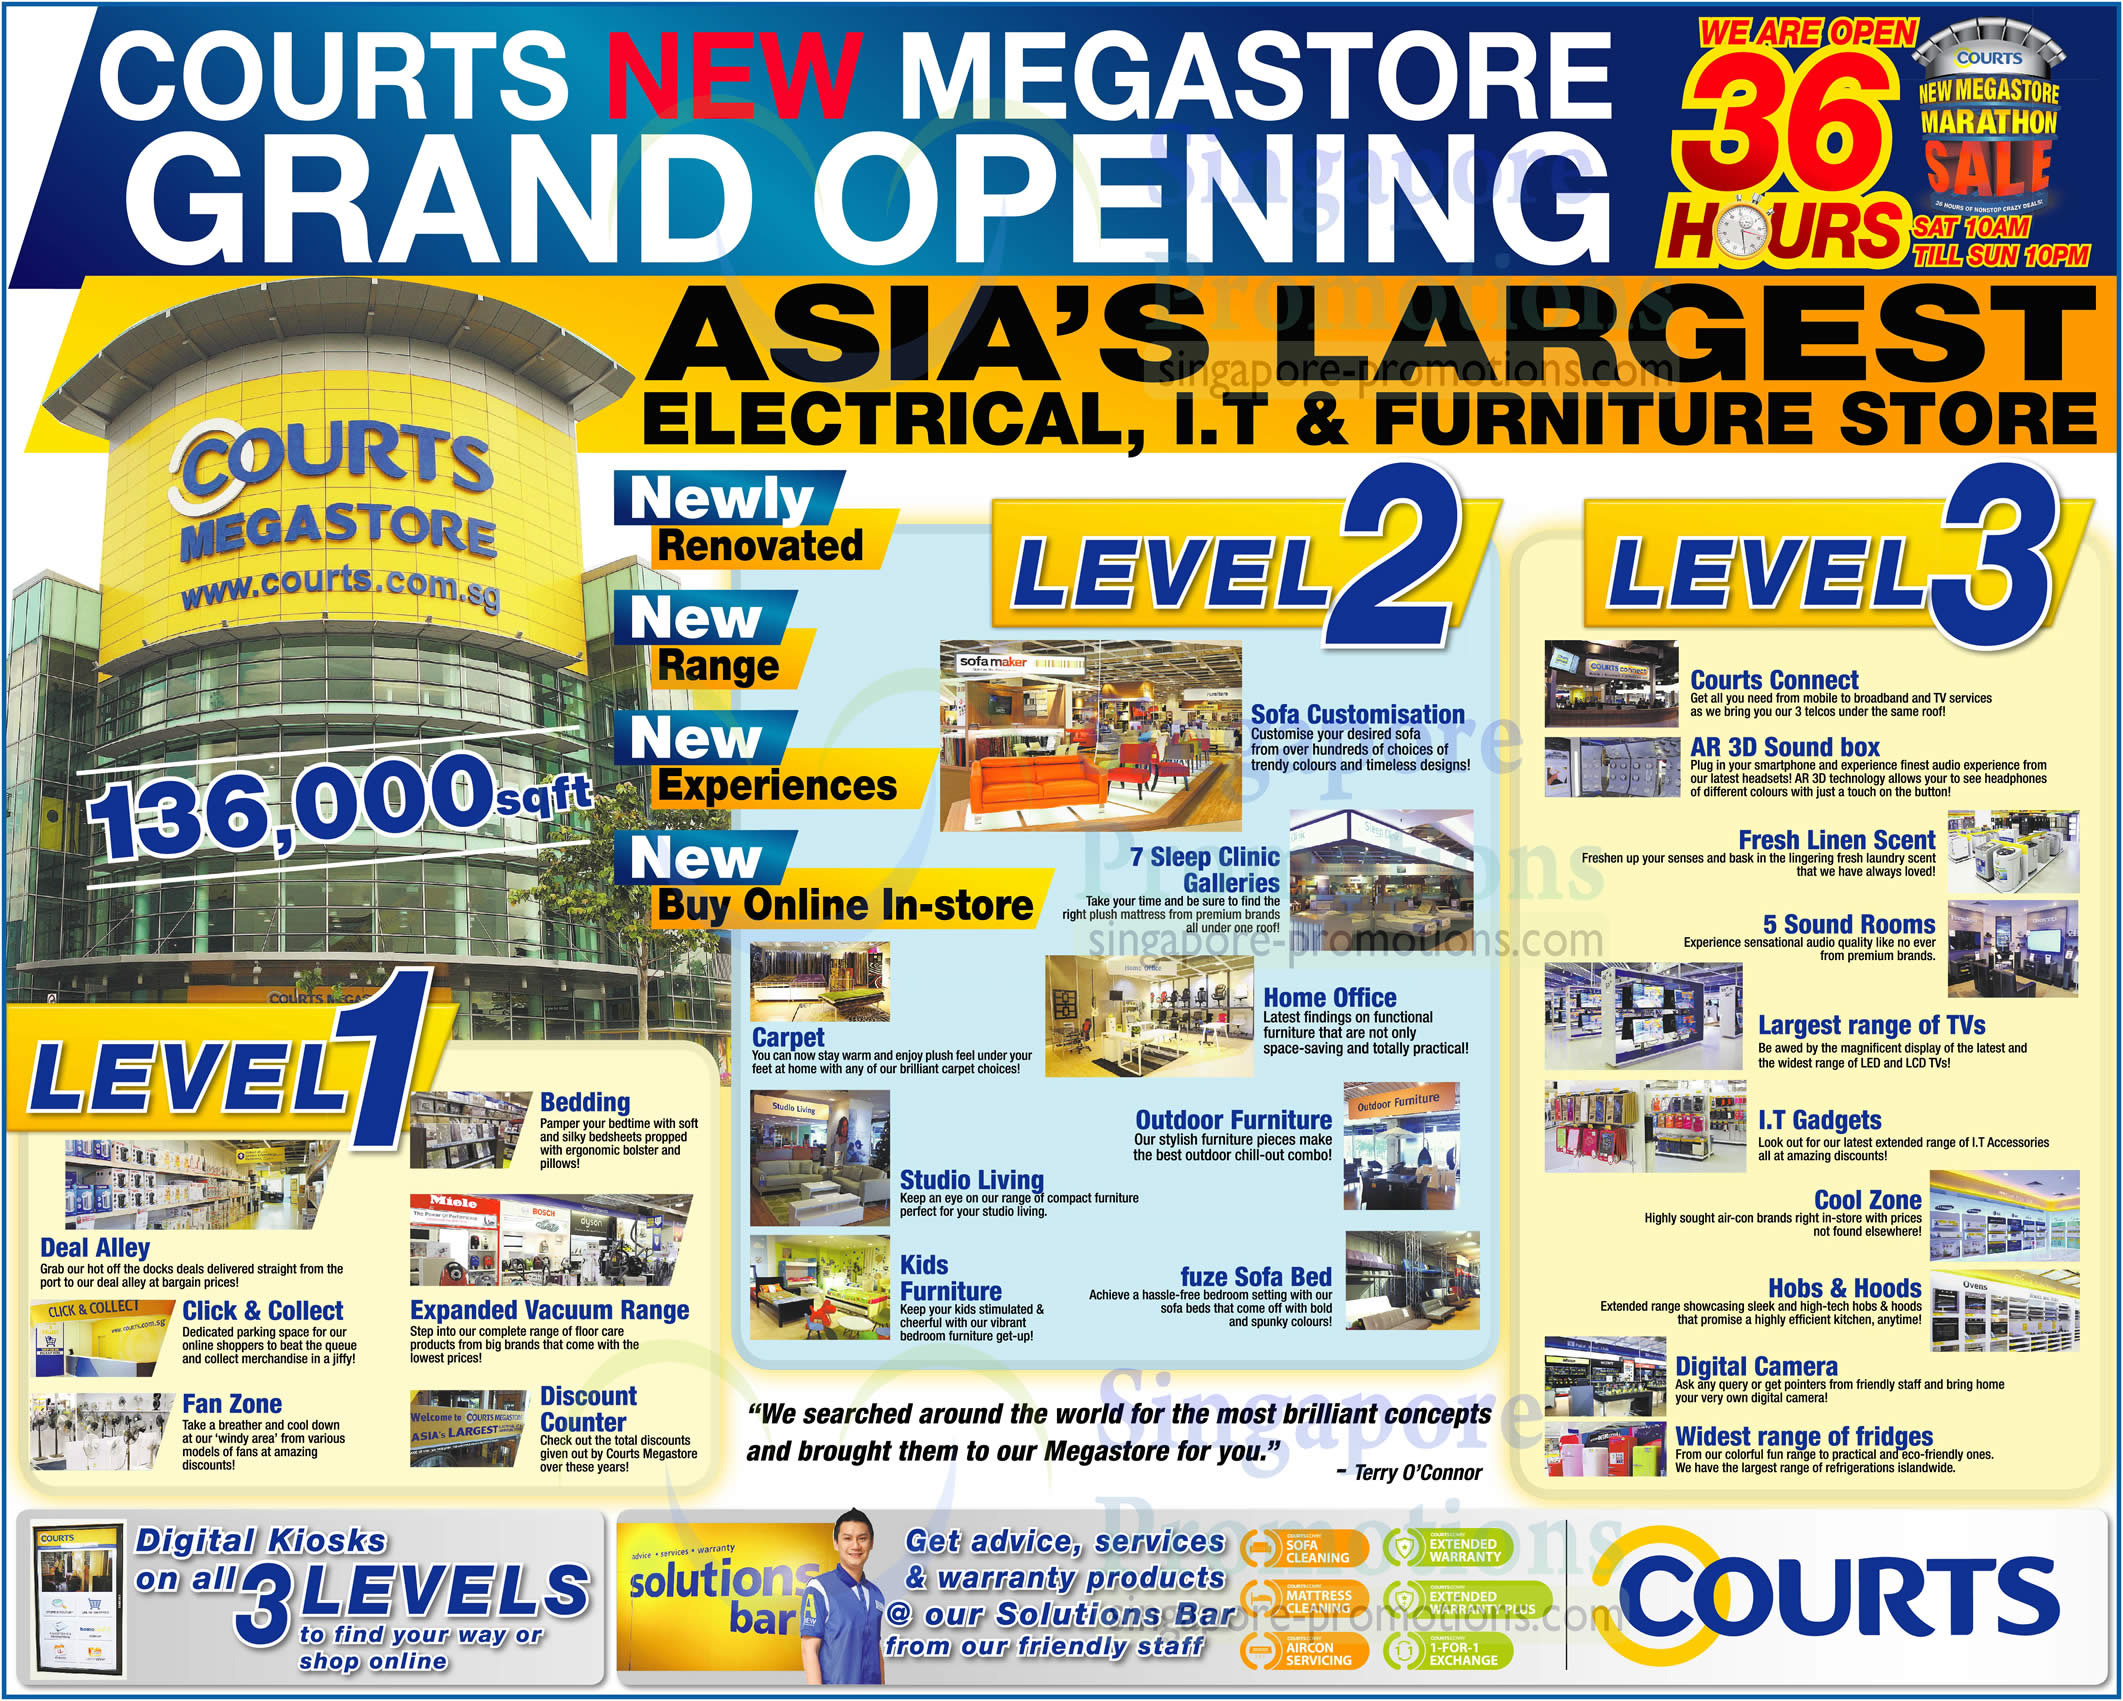 Courts New Megastore Marathon Sale 1 2 Dec 2012